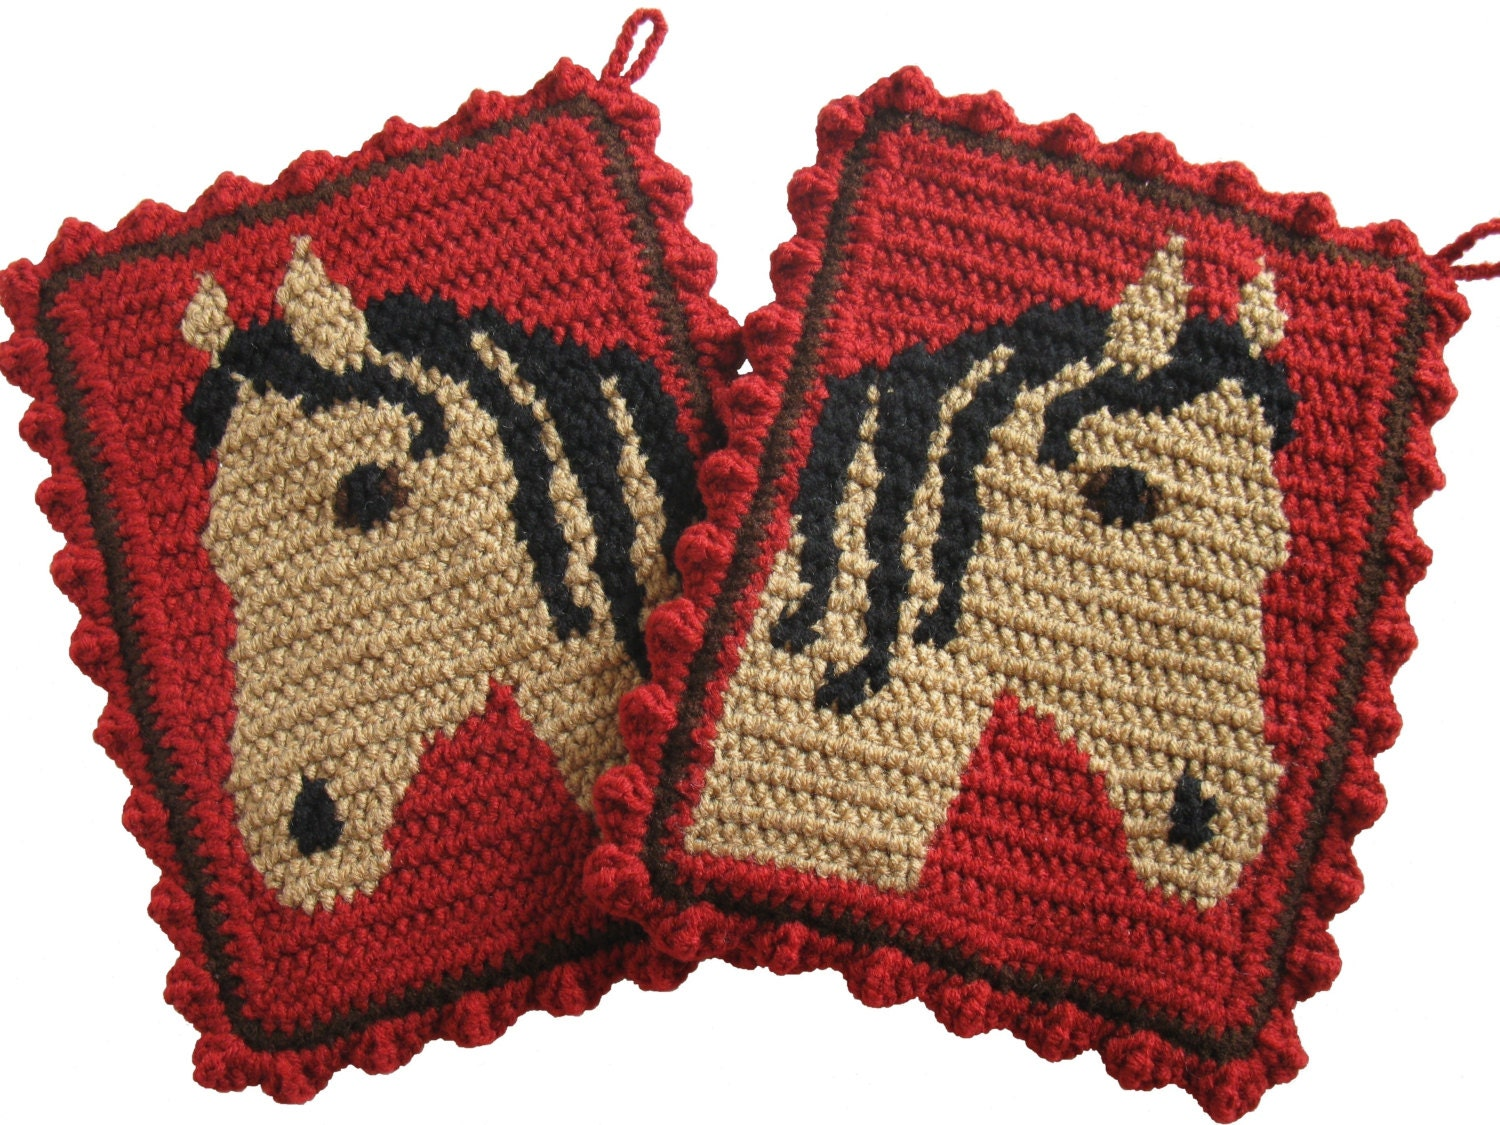 Horse Pot Holders Large Crochet Potholders With Buckskin Horse Heads Ranch Red Kitchen Decor